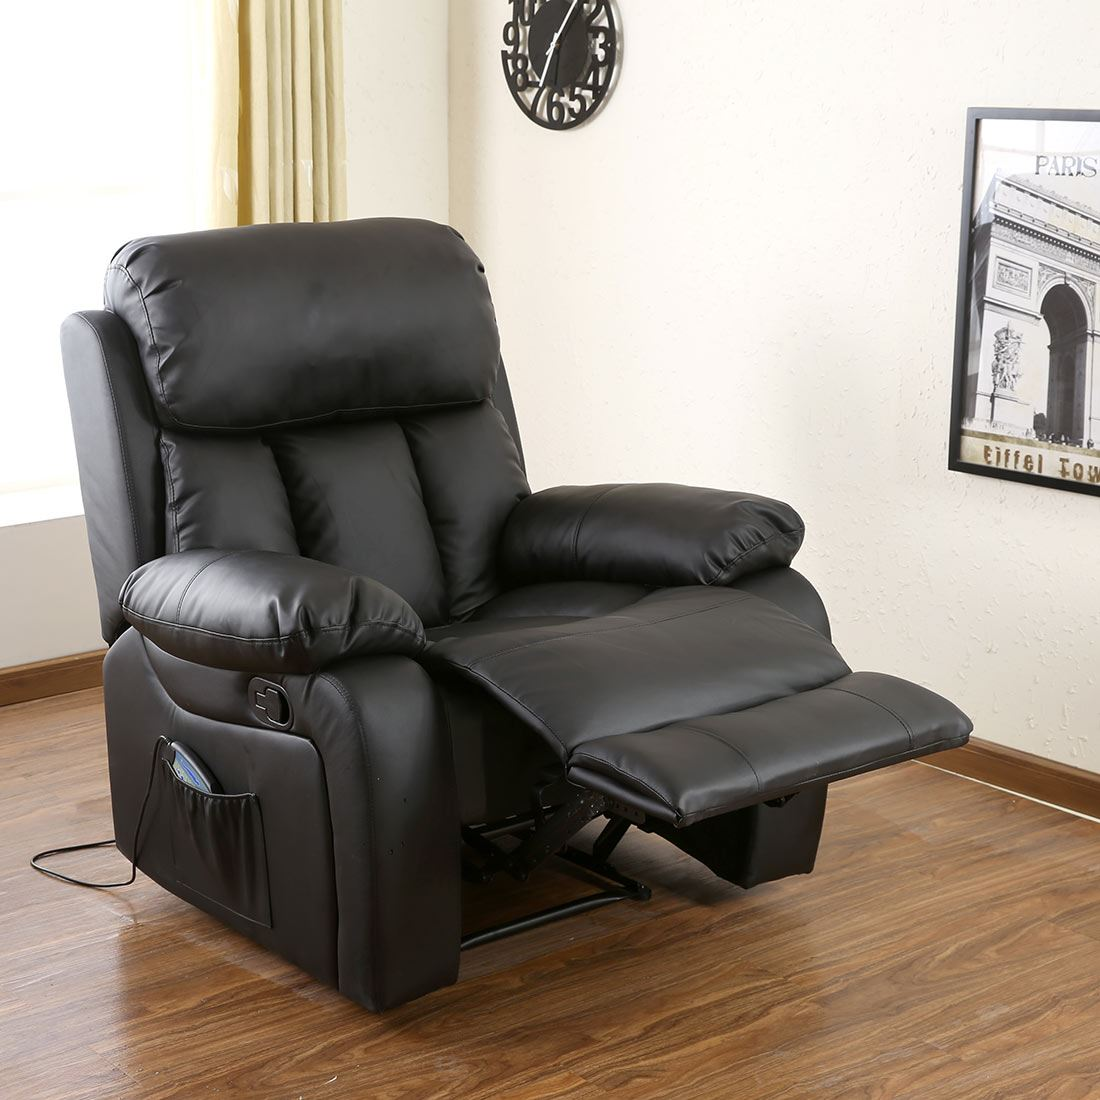 Massage Sofa Chester Heated Leather Massage Recliner Chair Sofa Lounge